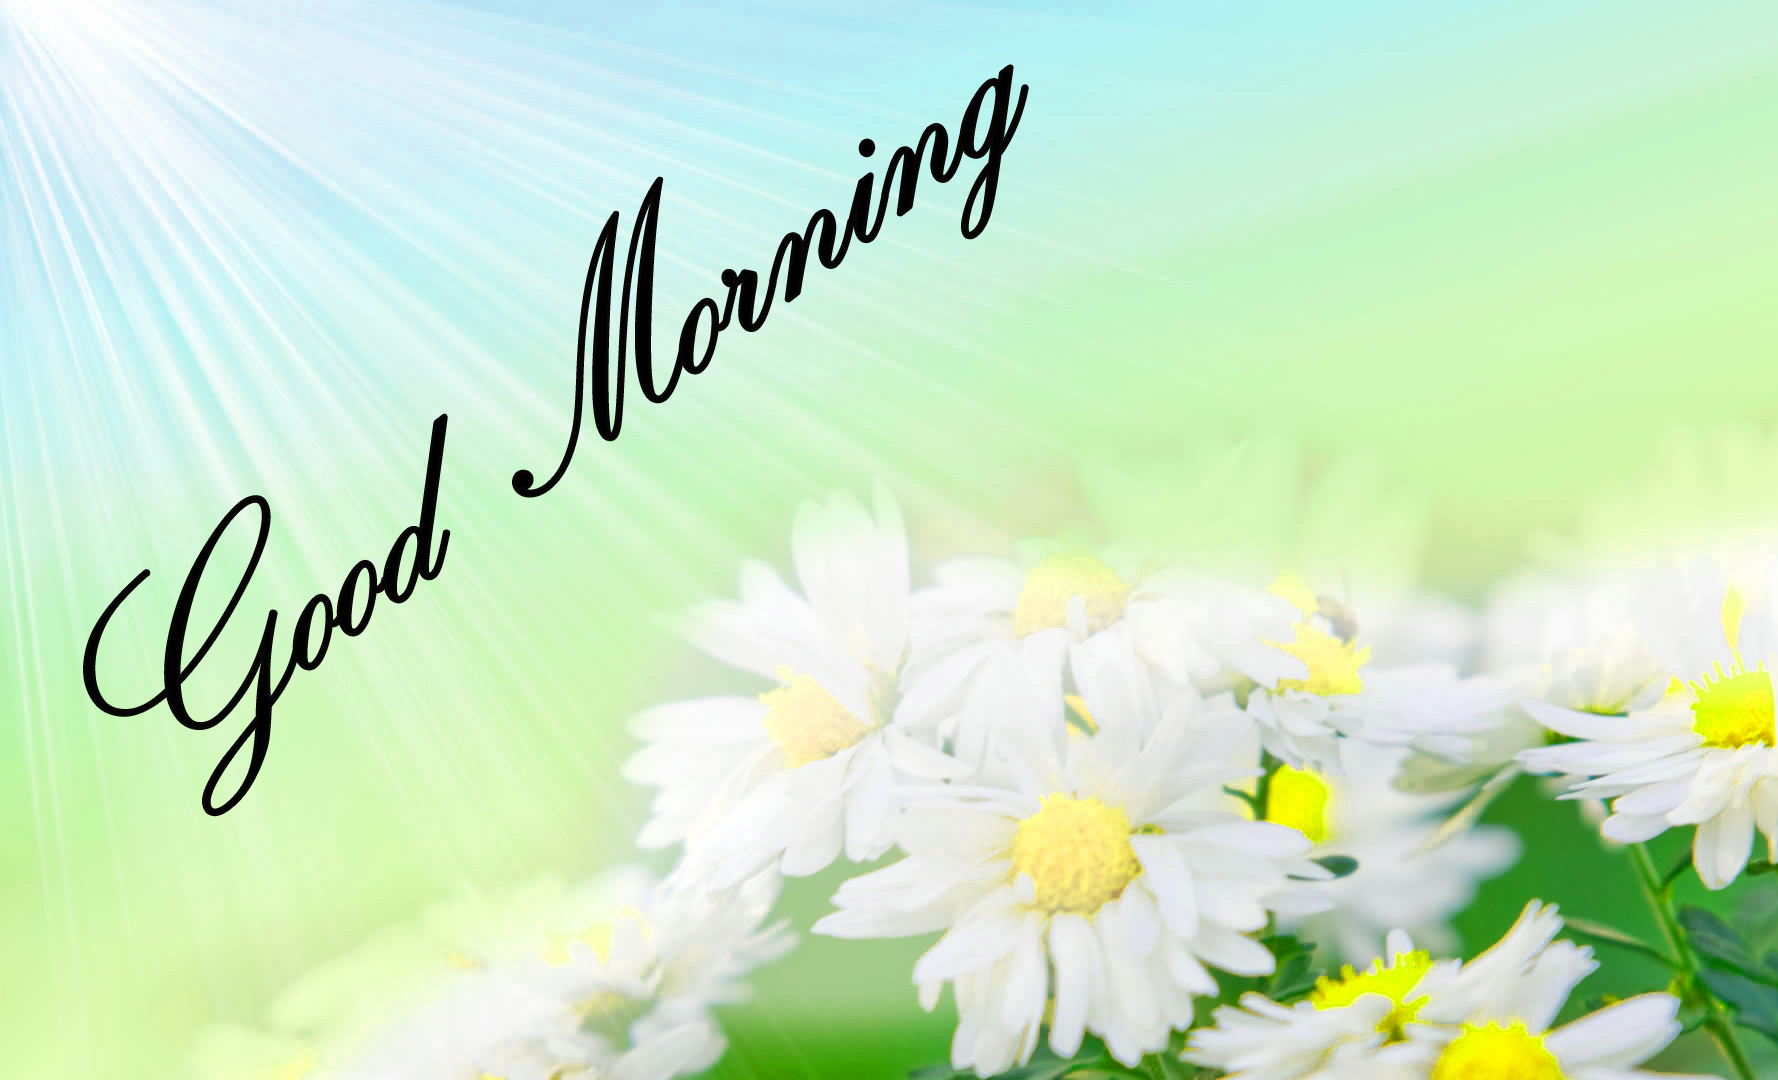 Good Morning Images Wallpaper Photo Pictures Pics Download for Whatsapp